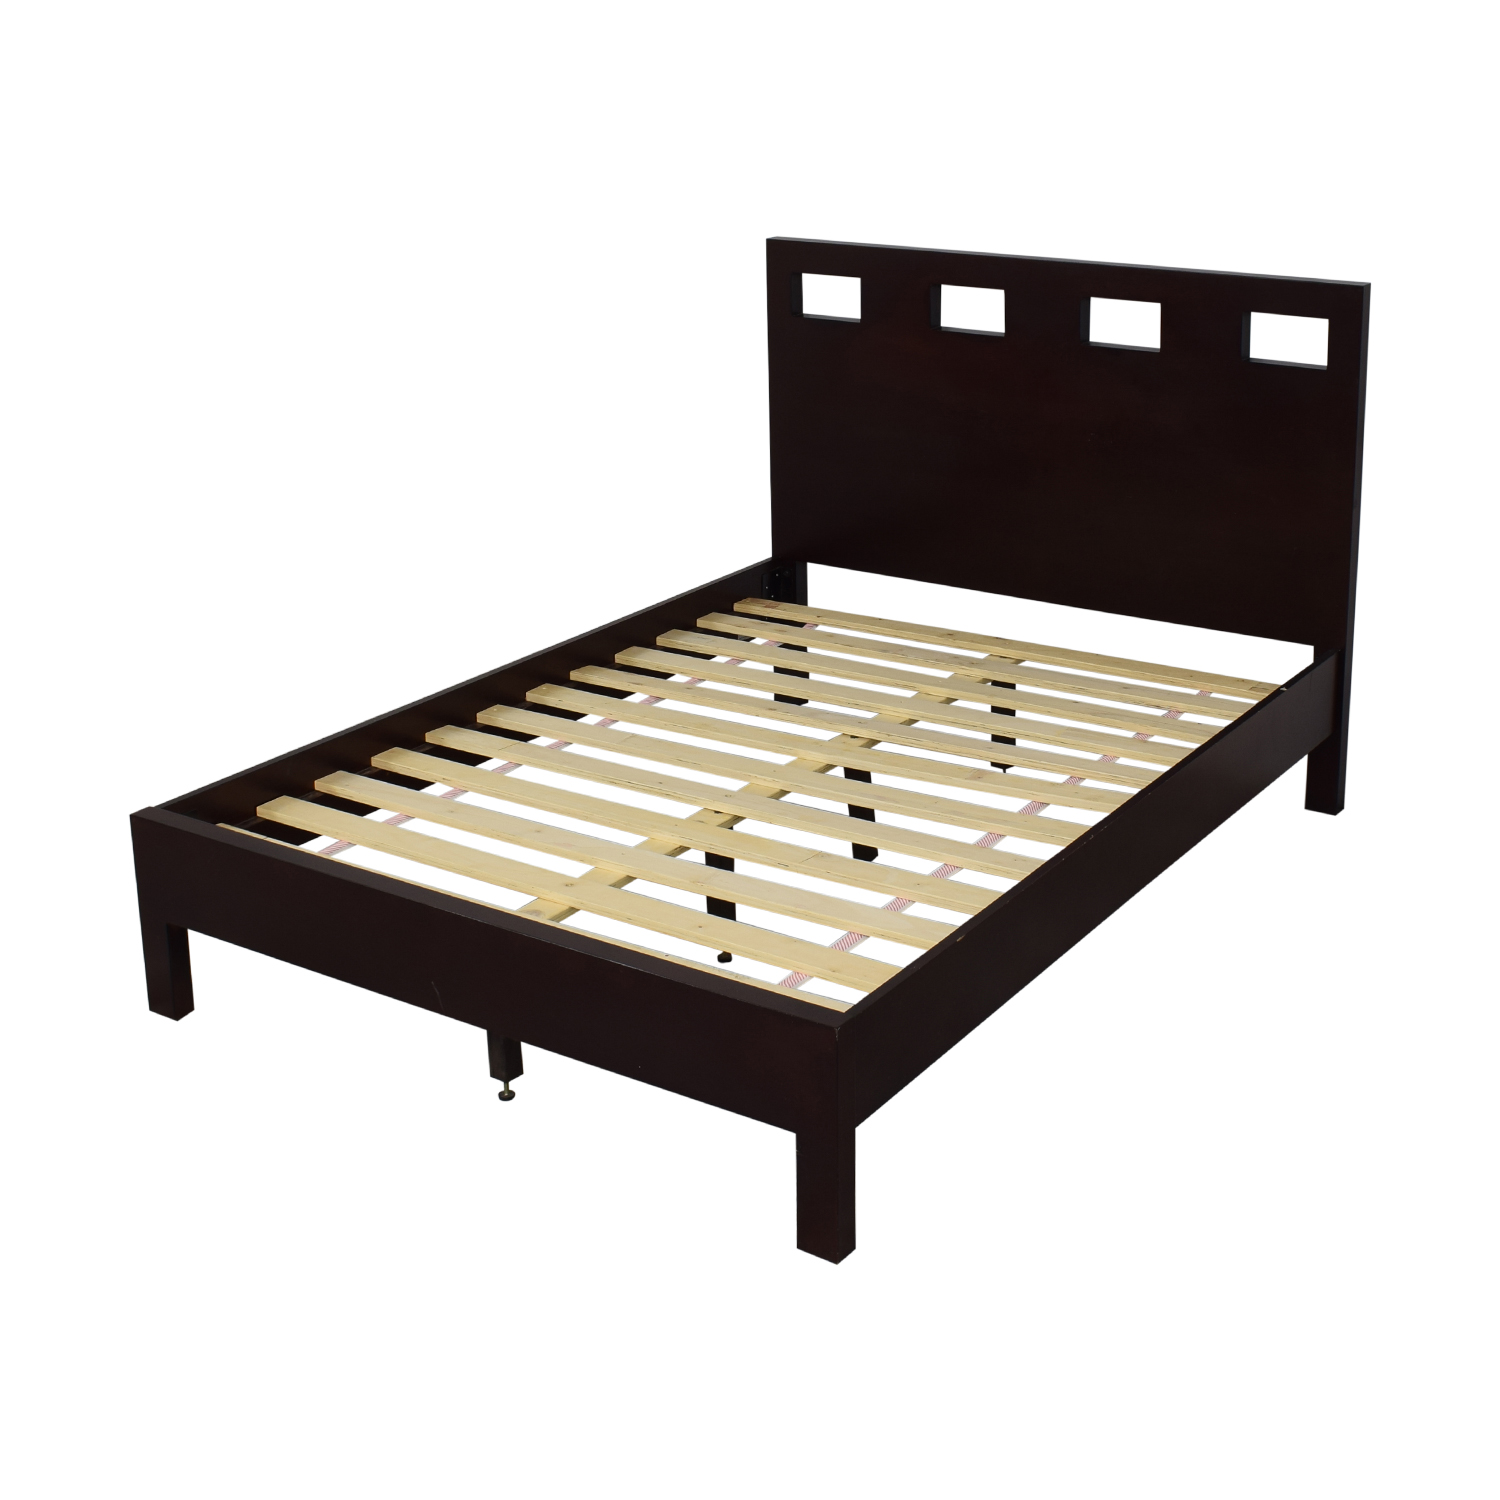 Modus Furniture Modus Furniture Riva Full Platform Bed Frame dimensions